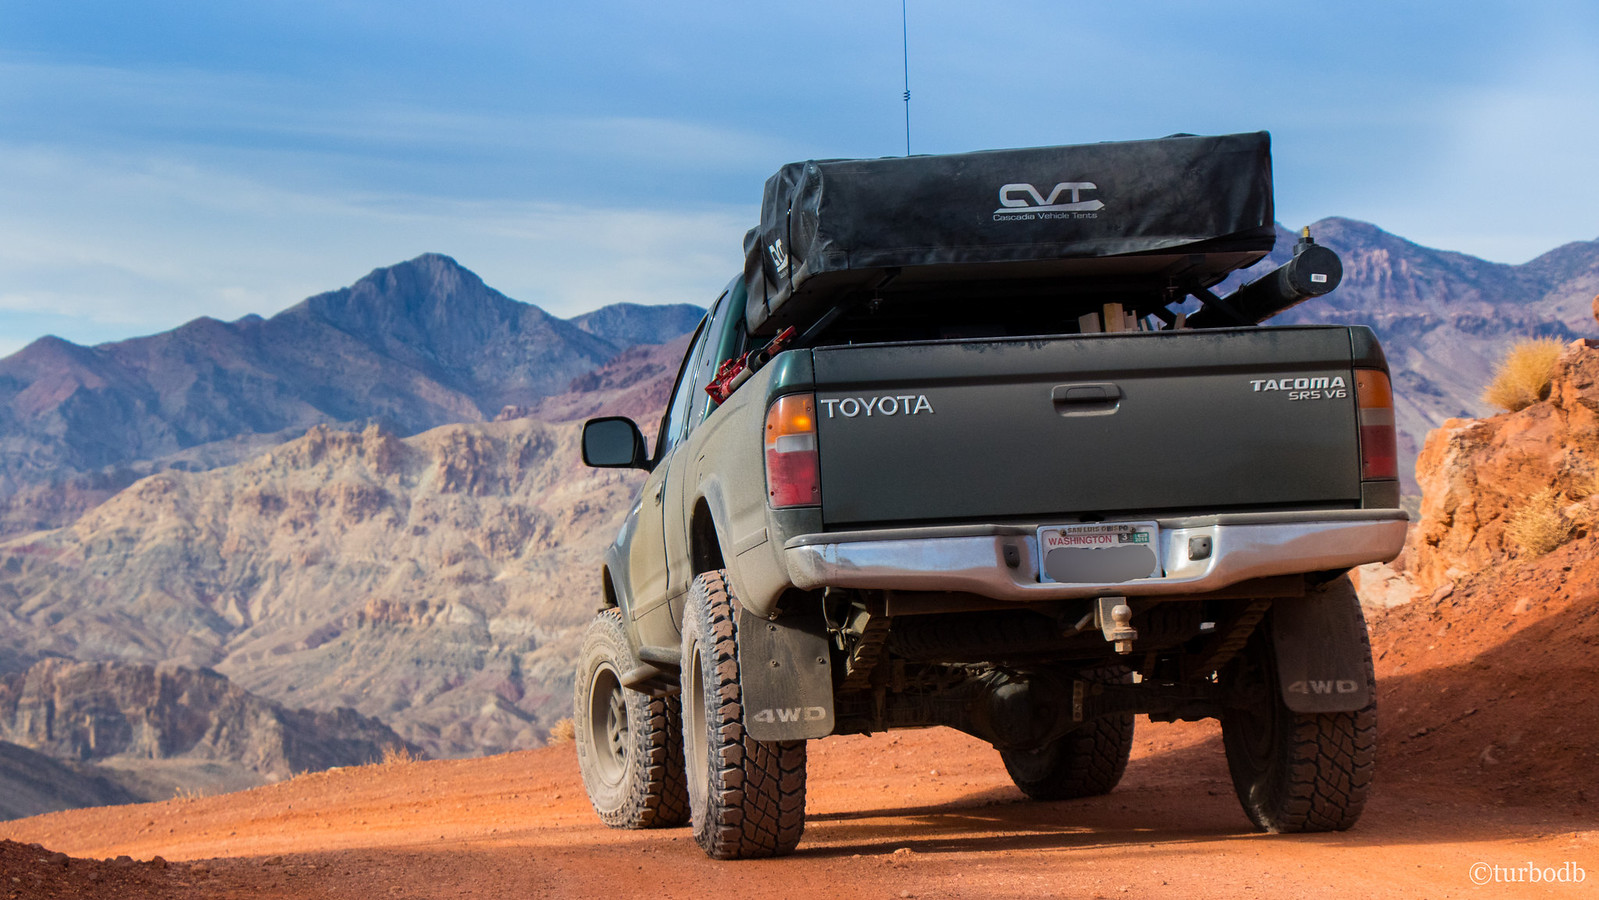 AdventureTaco in Death Valley, California